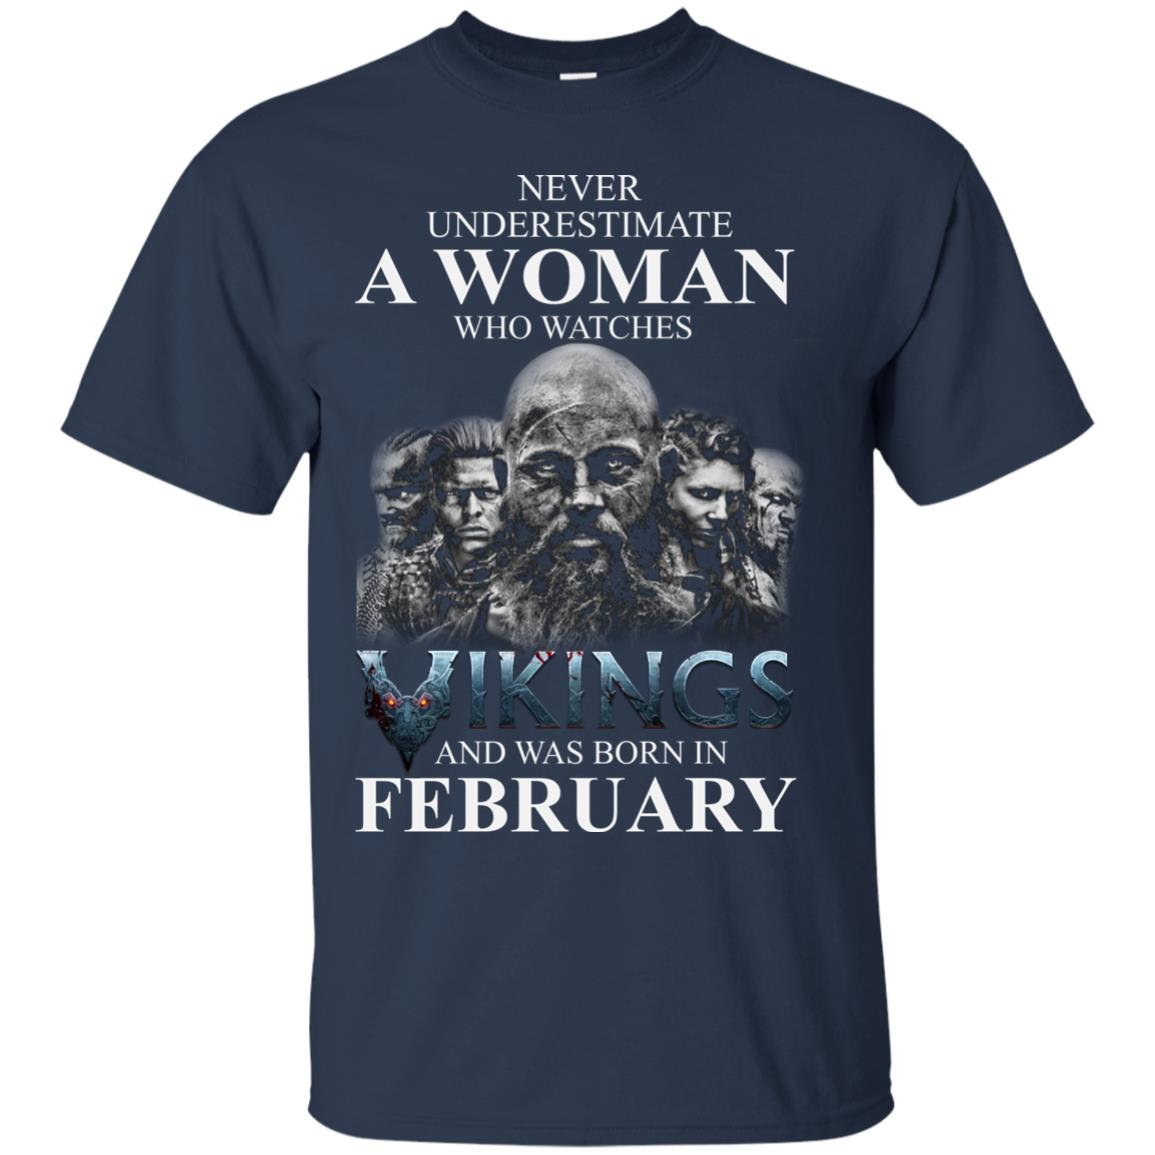 image 1340 - Never Underestimate A woman who watches Vikings and was born in February shirt